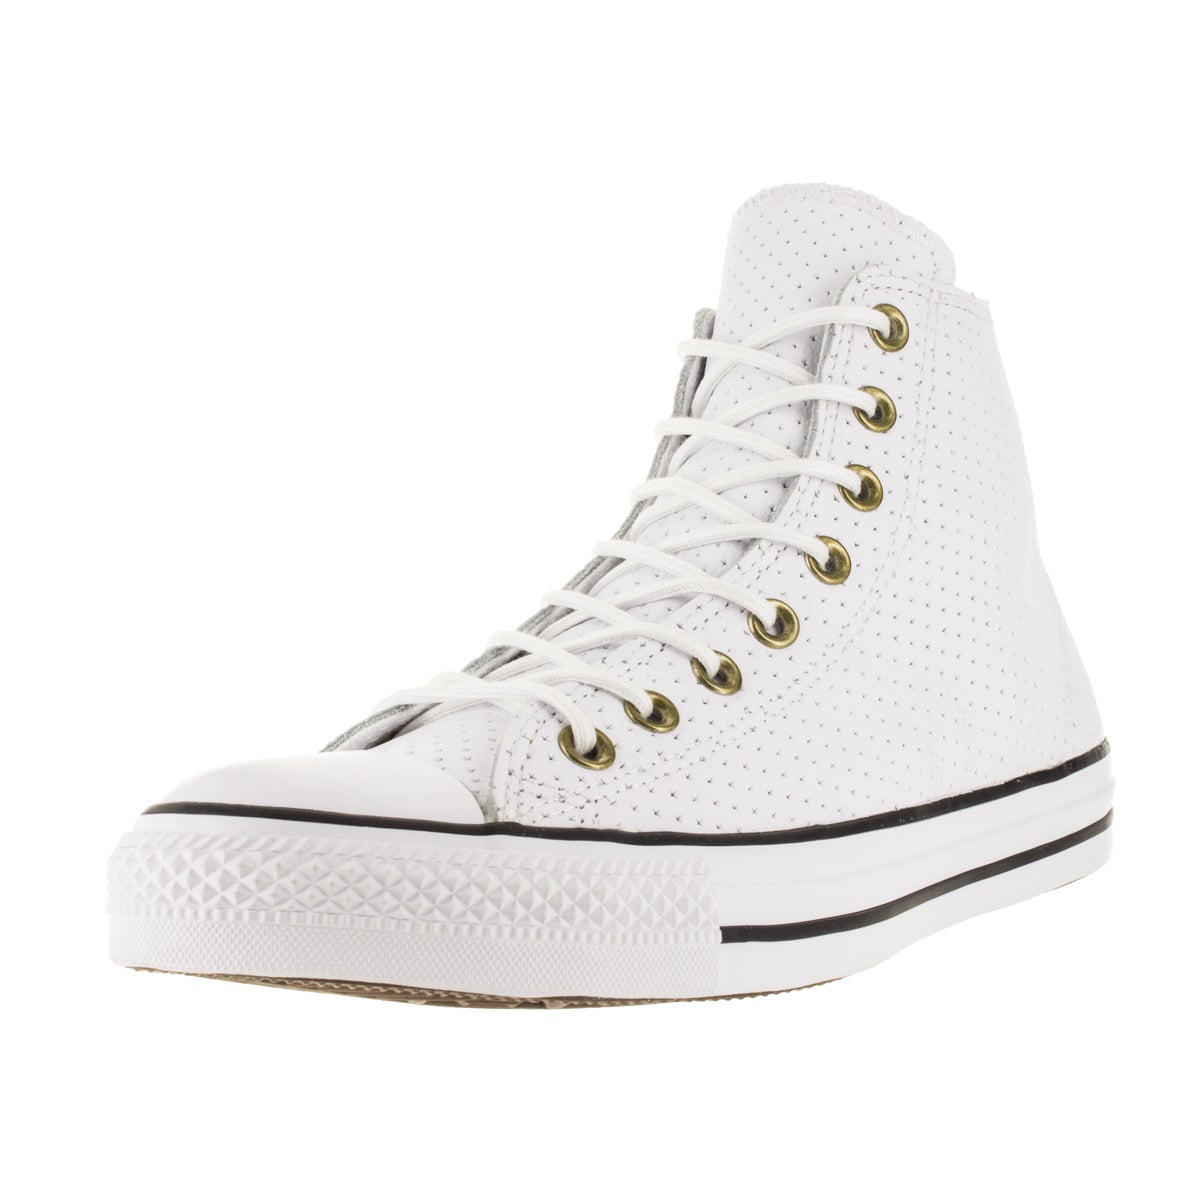 Converse Unisex Chuck Taylor All Star Hi White/Biscui Bas...